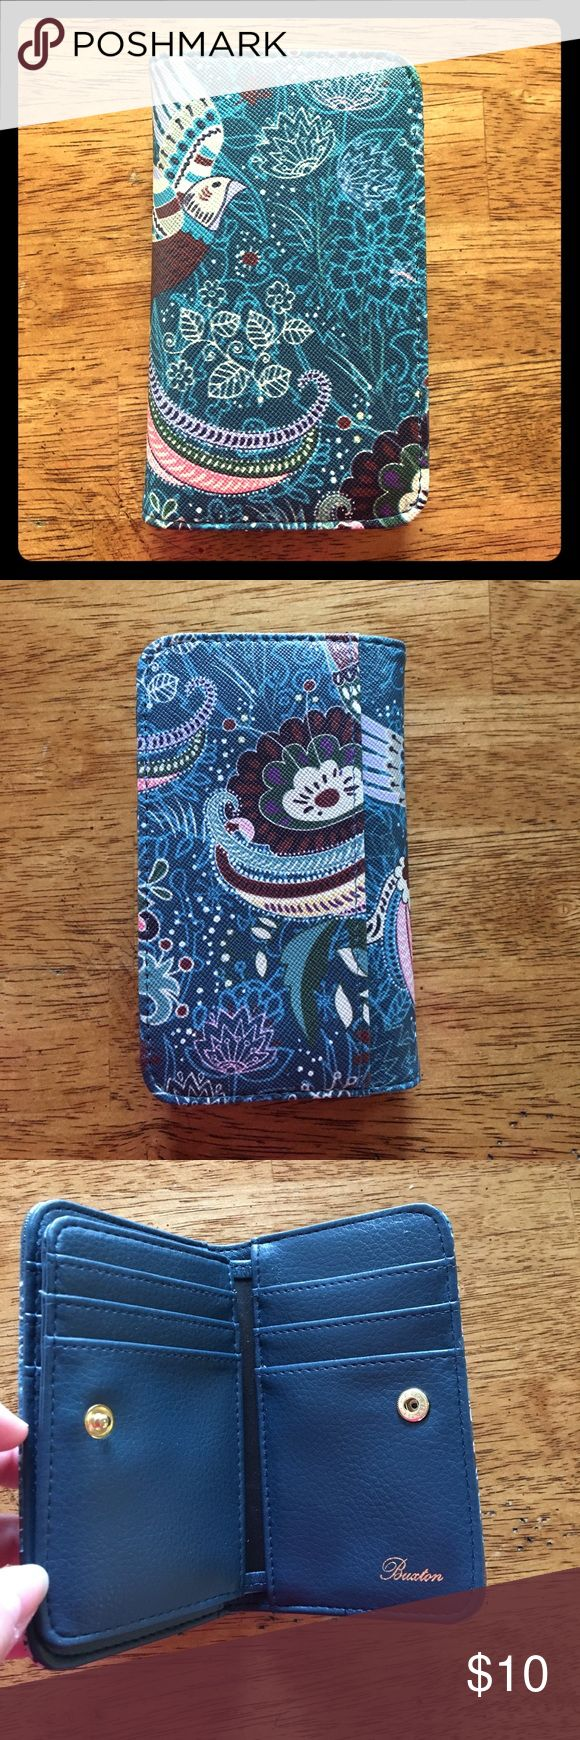 RFID Buxton Wallet RFID Protection! So no one can steal your identity! Never used. NWOT. Pretty real and bird design. No marks or stains. Smoke free home. Make me an offer! Bags Wallets